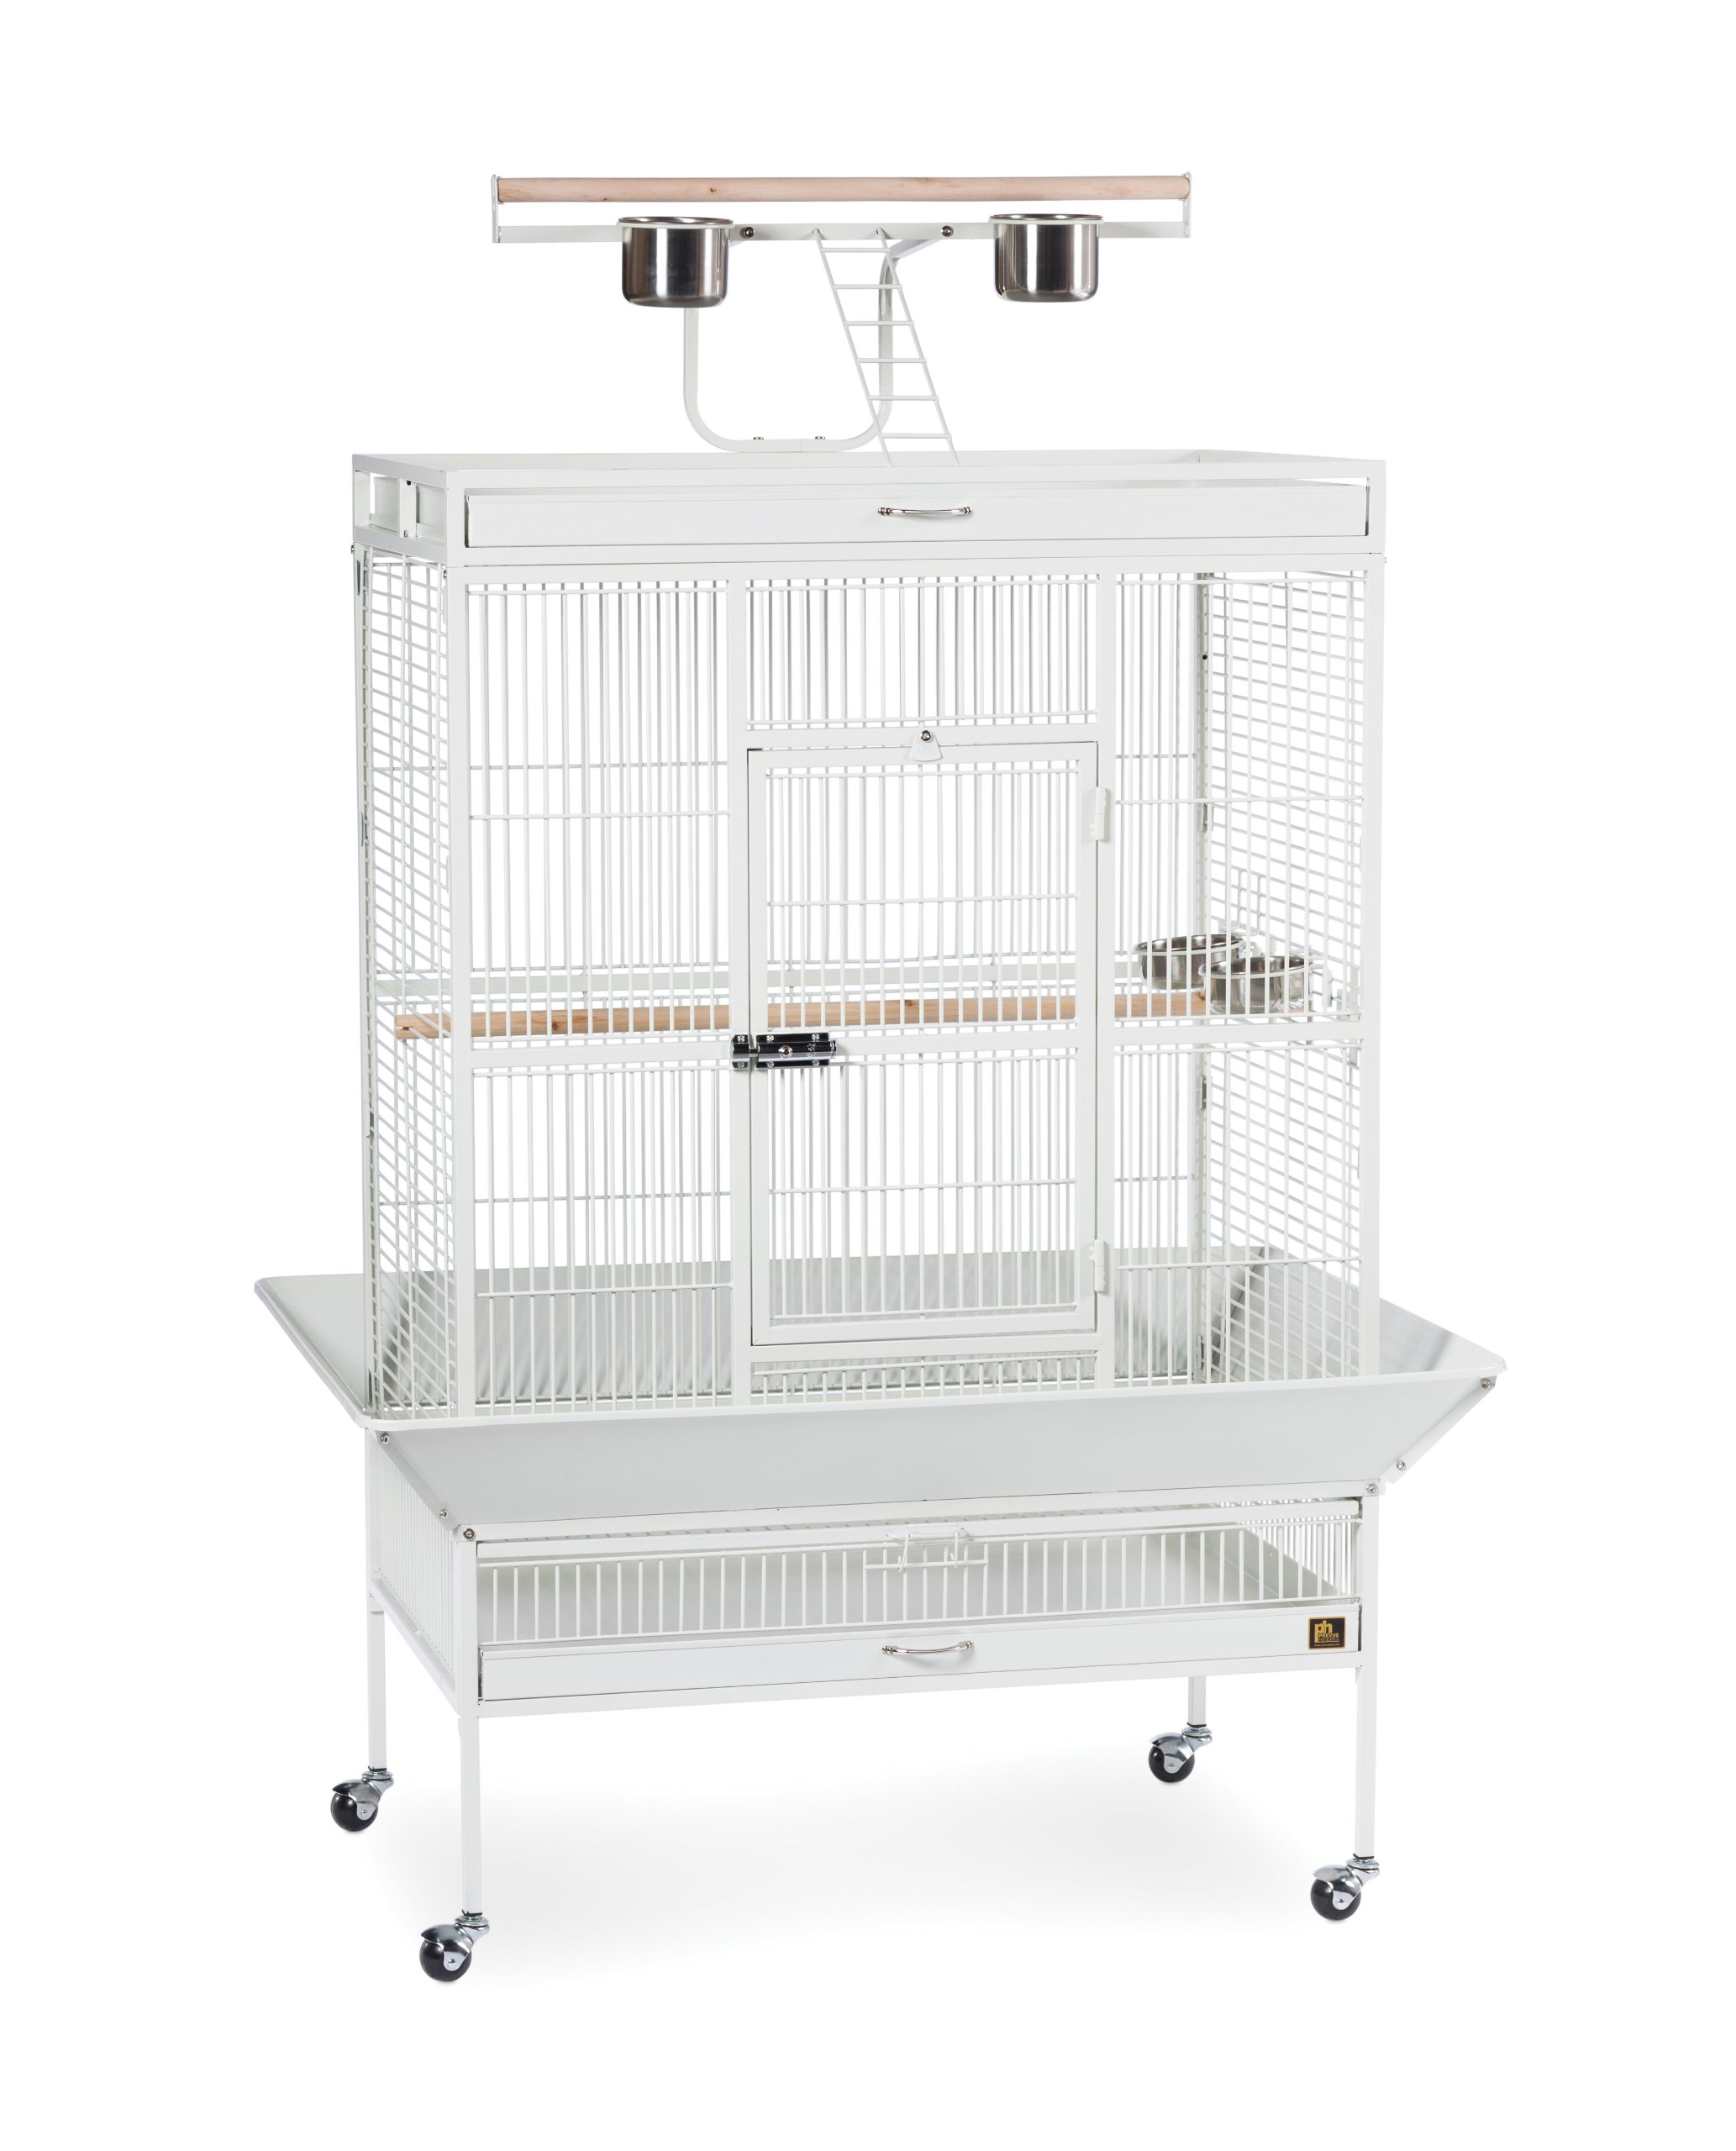 Prevue Pet Products Wrought Iron Select Bird Cage 3154C, Chalk White, 36-Inch by 24-Inch by 66-Inch by Prevue Hendryx